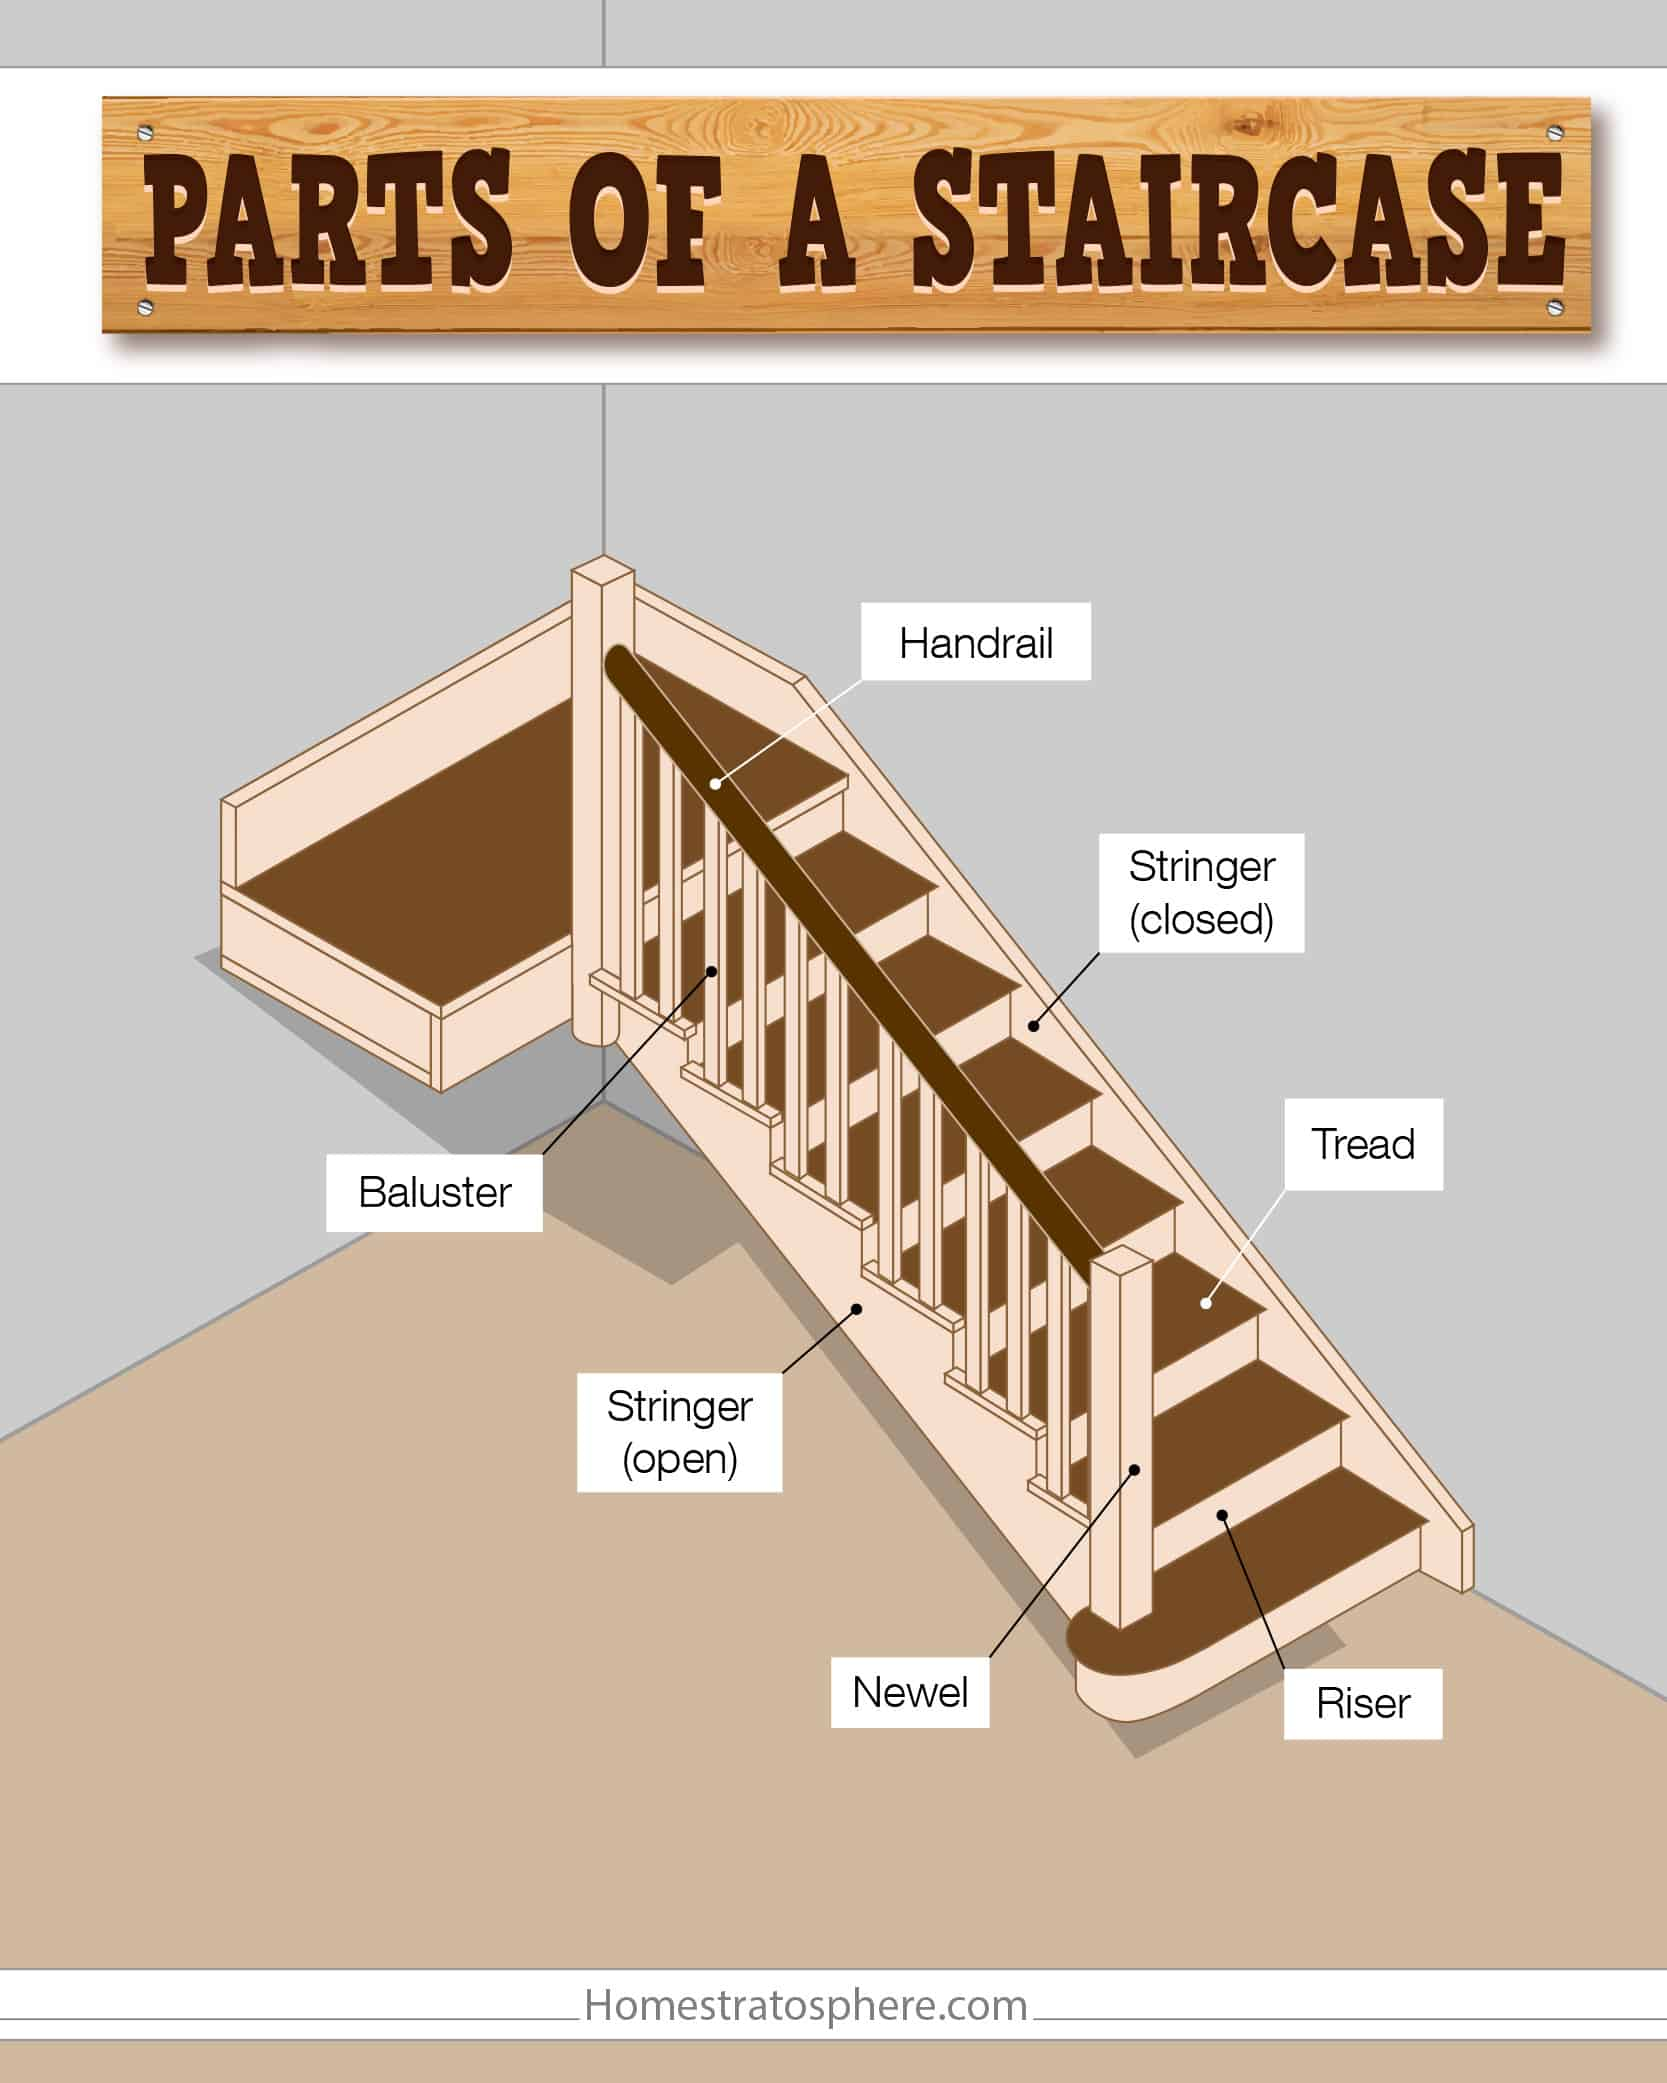 Stair case diagram anything wiring diagrams parts of a staircase illustrated diagram rh homestratosphere com staircase ladder diagram staircase wiring connection diagram asfbconference2016